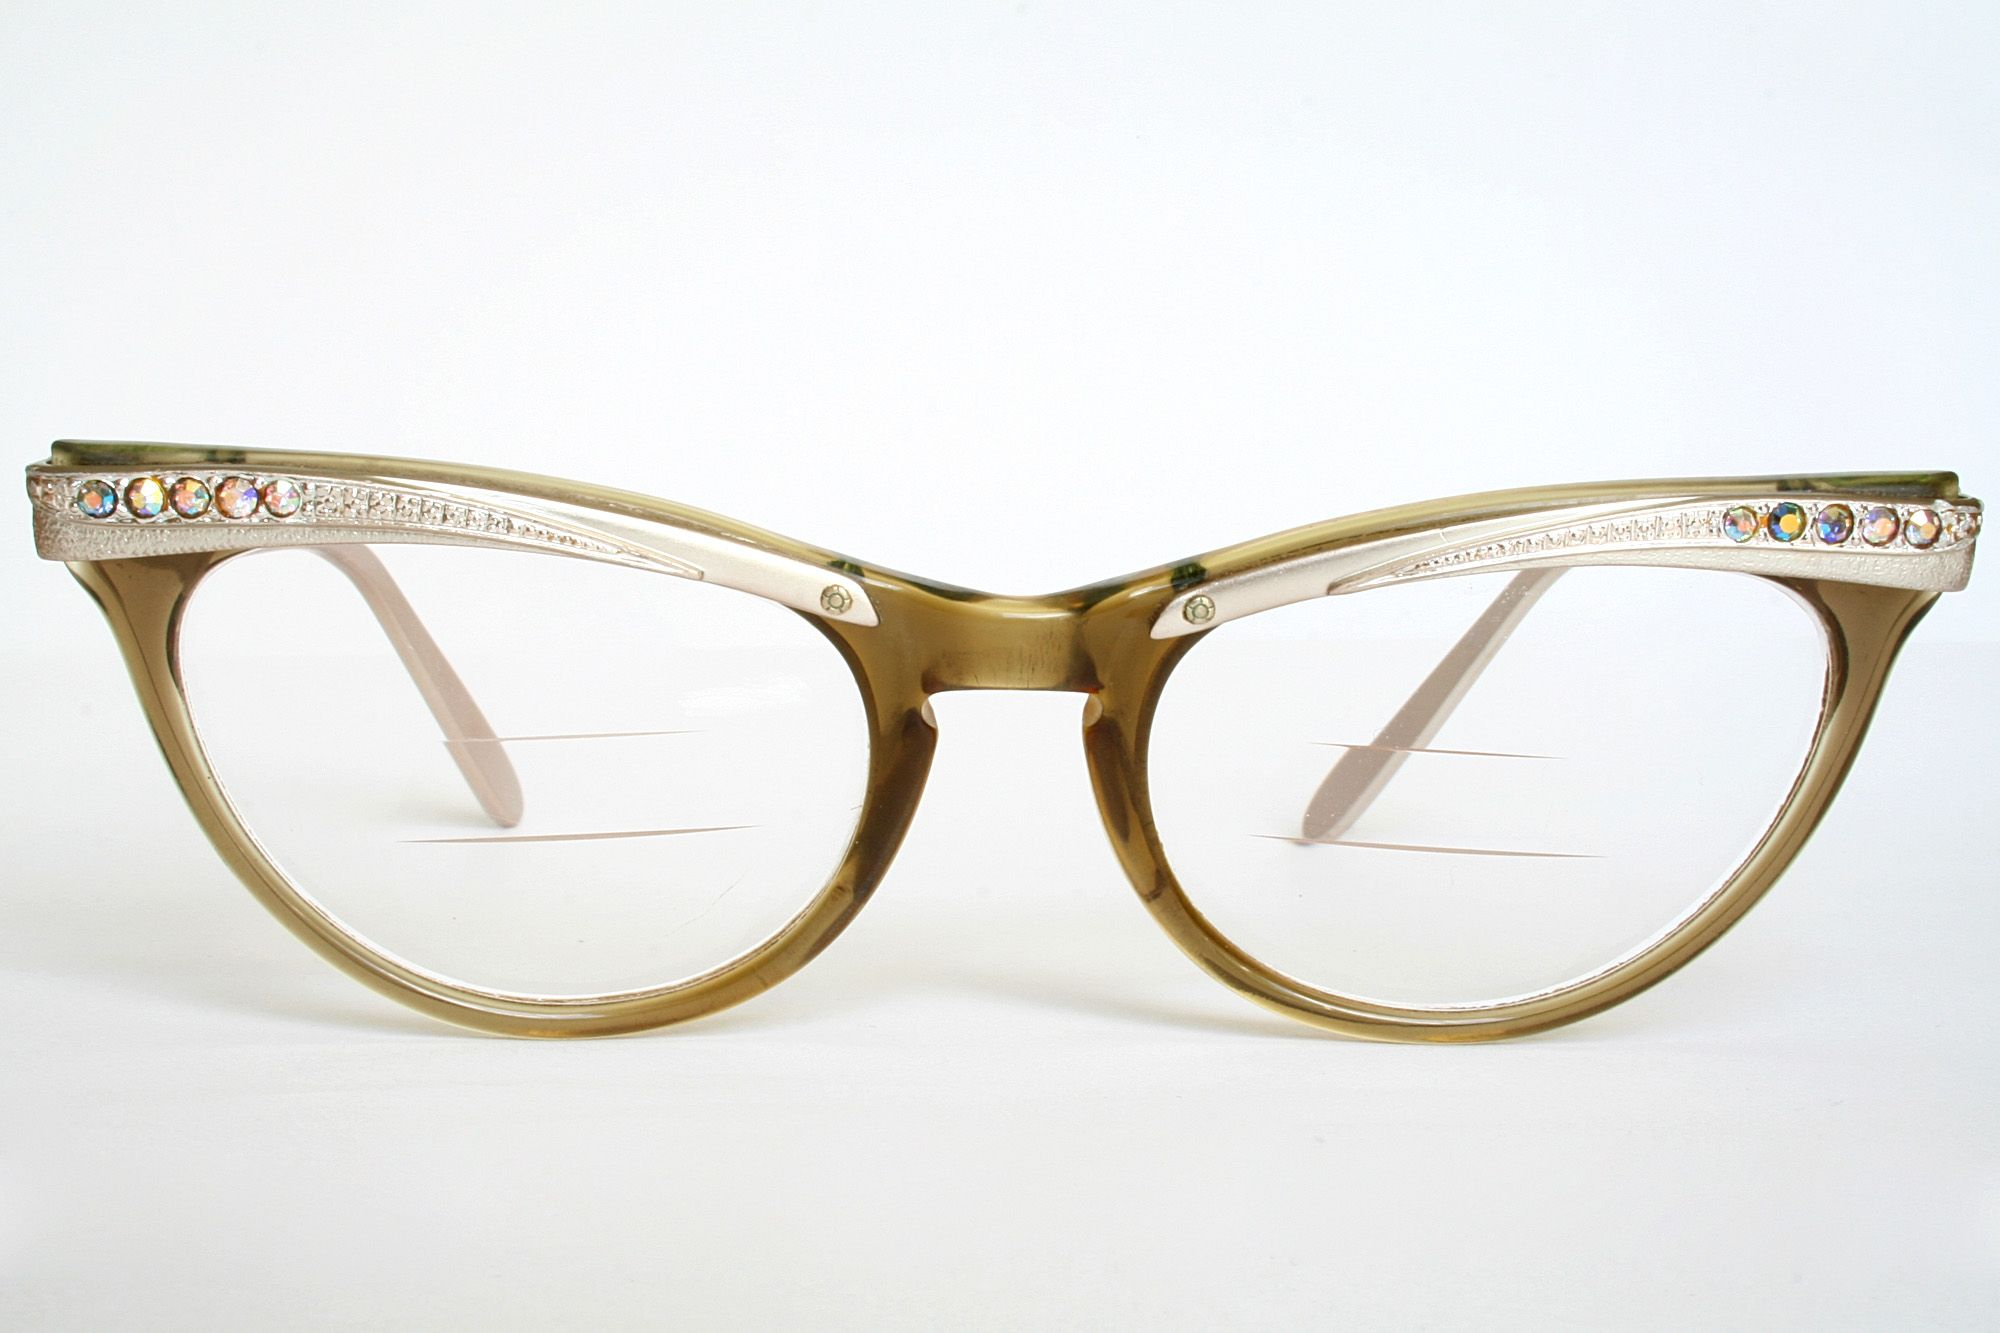 vintage cateye sunglasses - Google Search | Eye See You | Pinterest